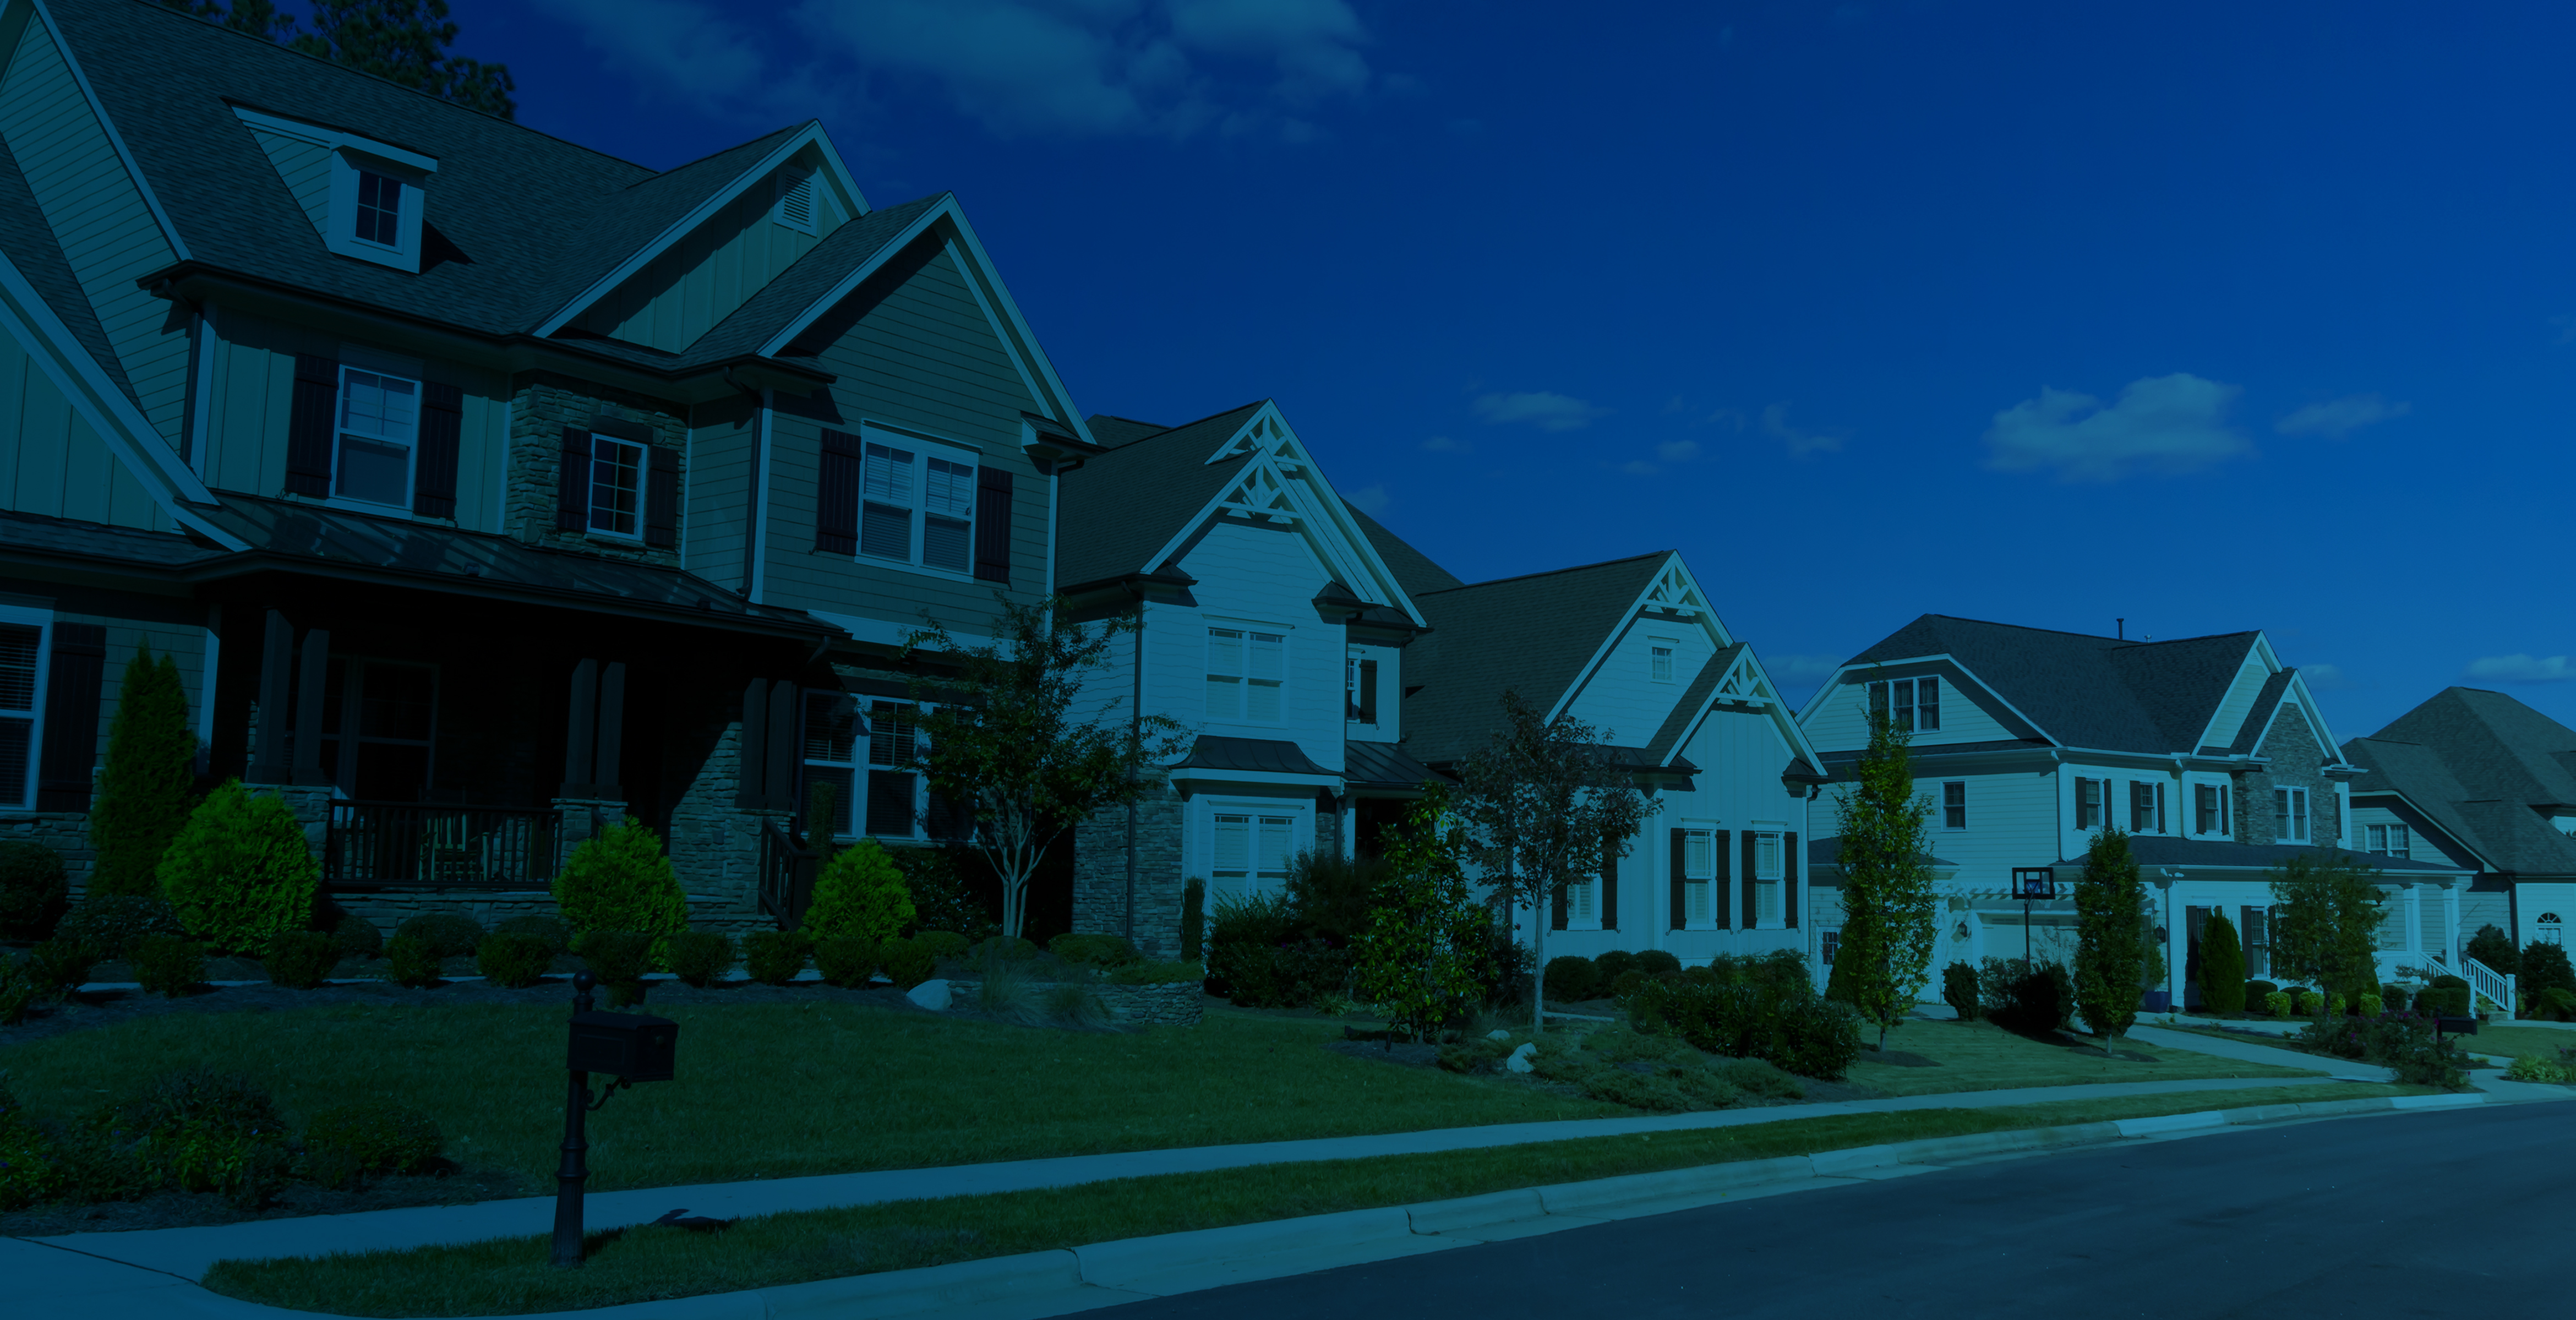 National Home Builder Increases Awareness Among Home Buyers For New Home Community